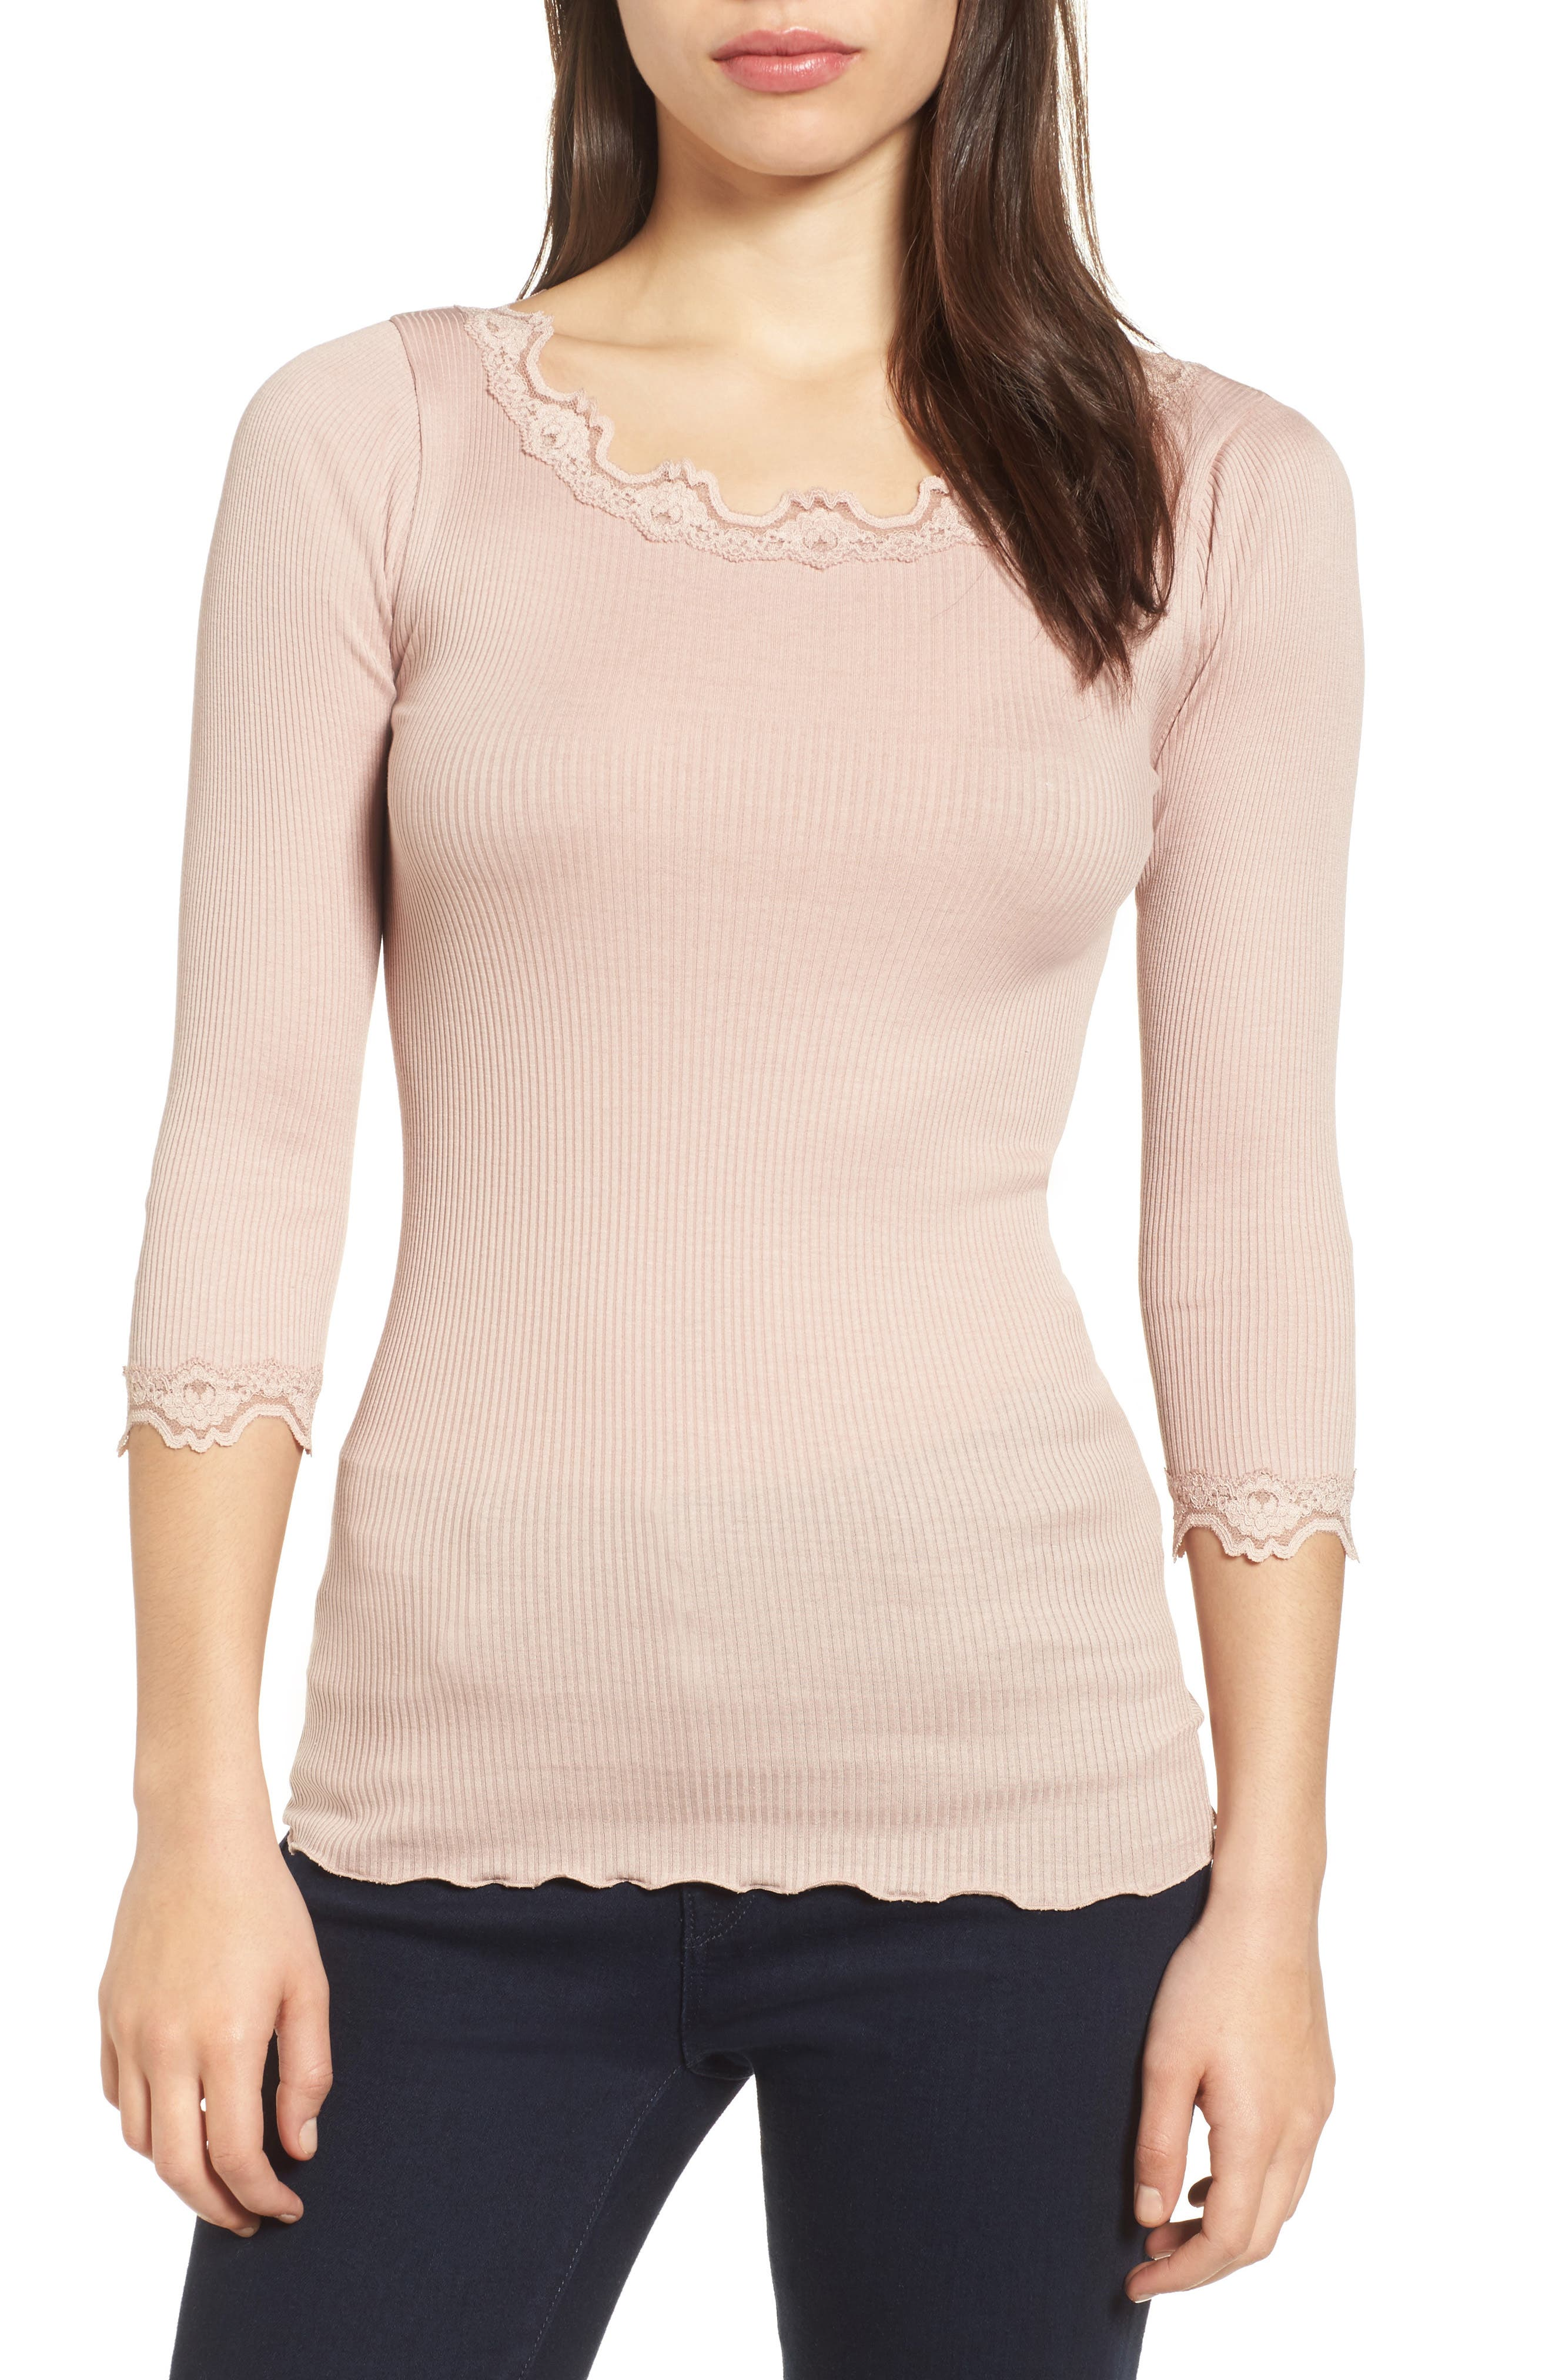 Alternate Image 1 Selected - Rosemunde Babette Lace Trim Top